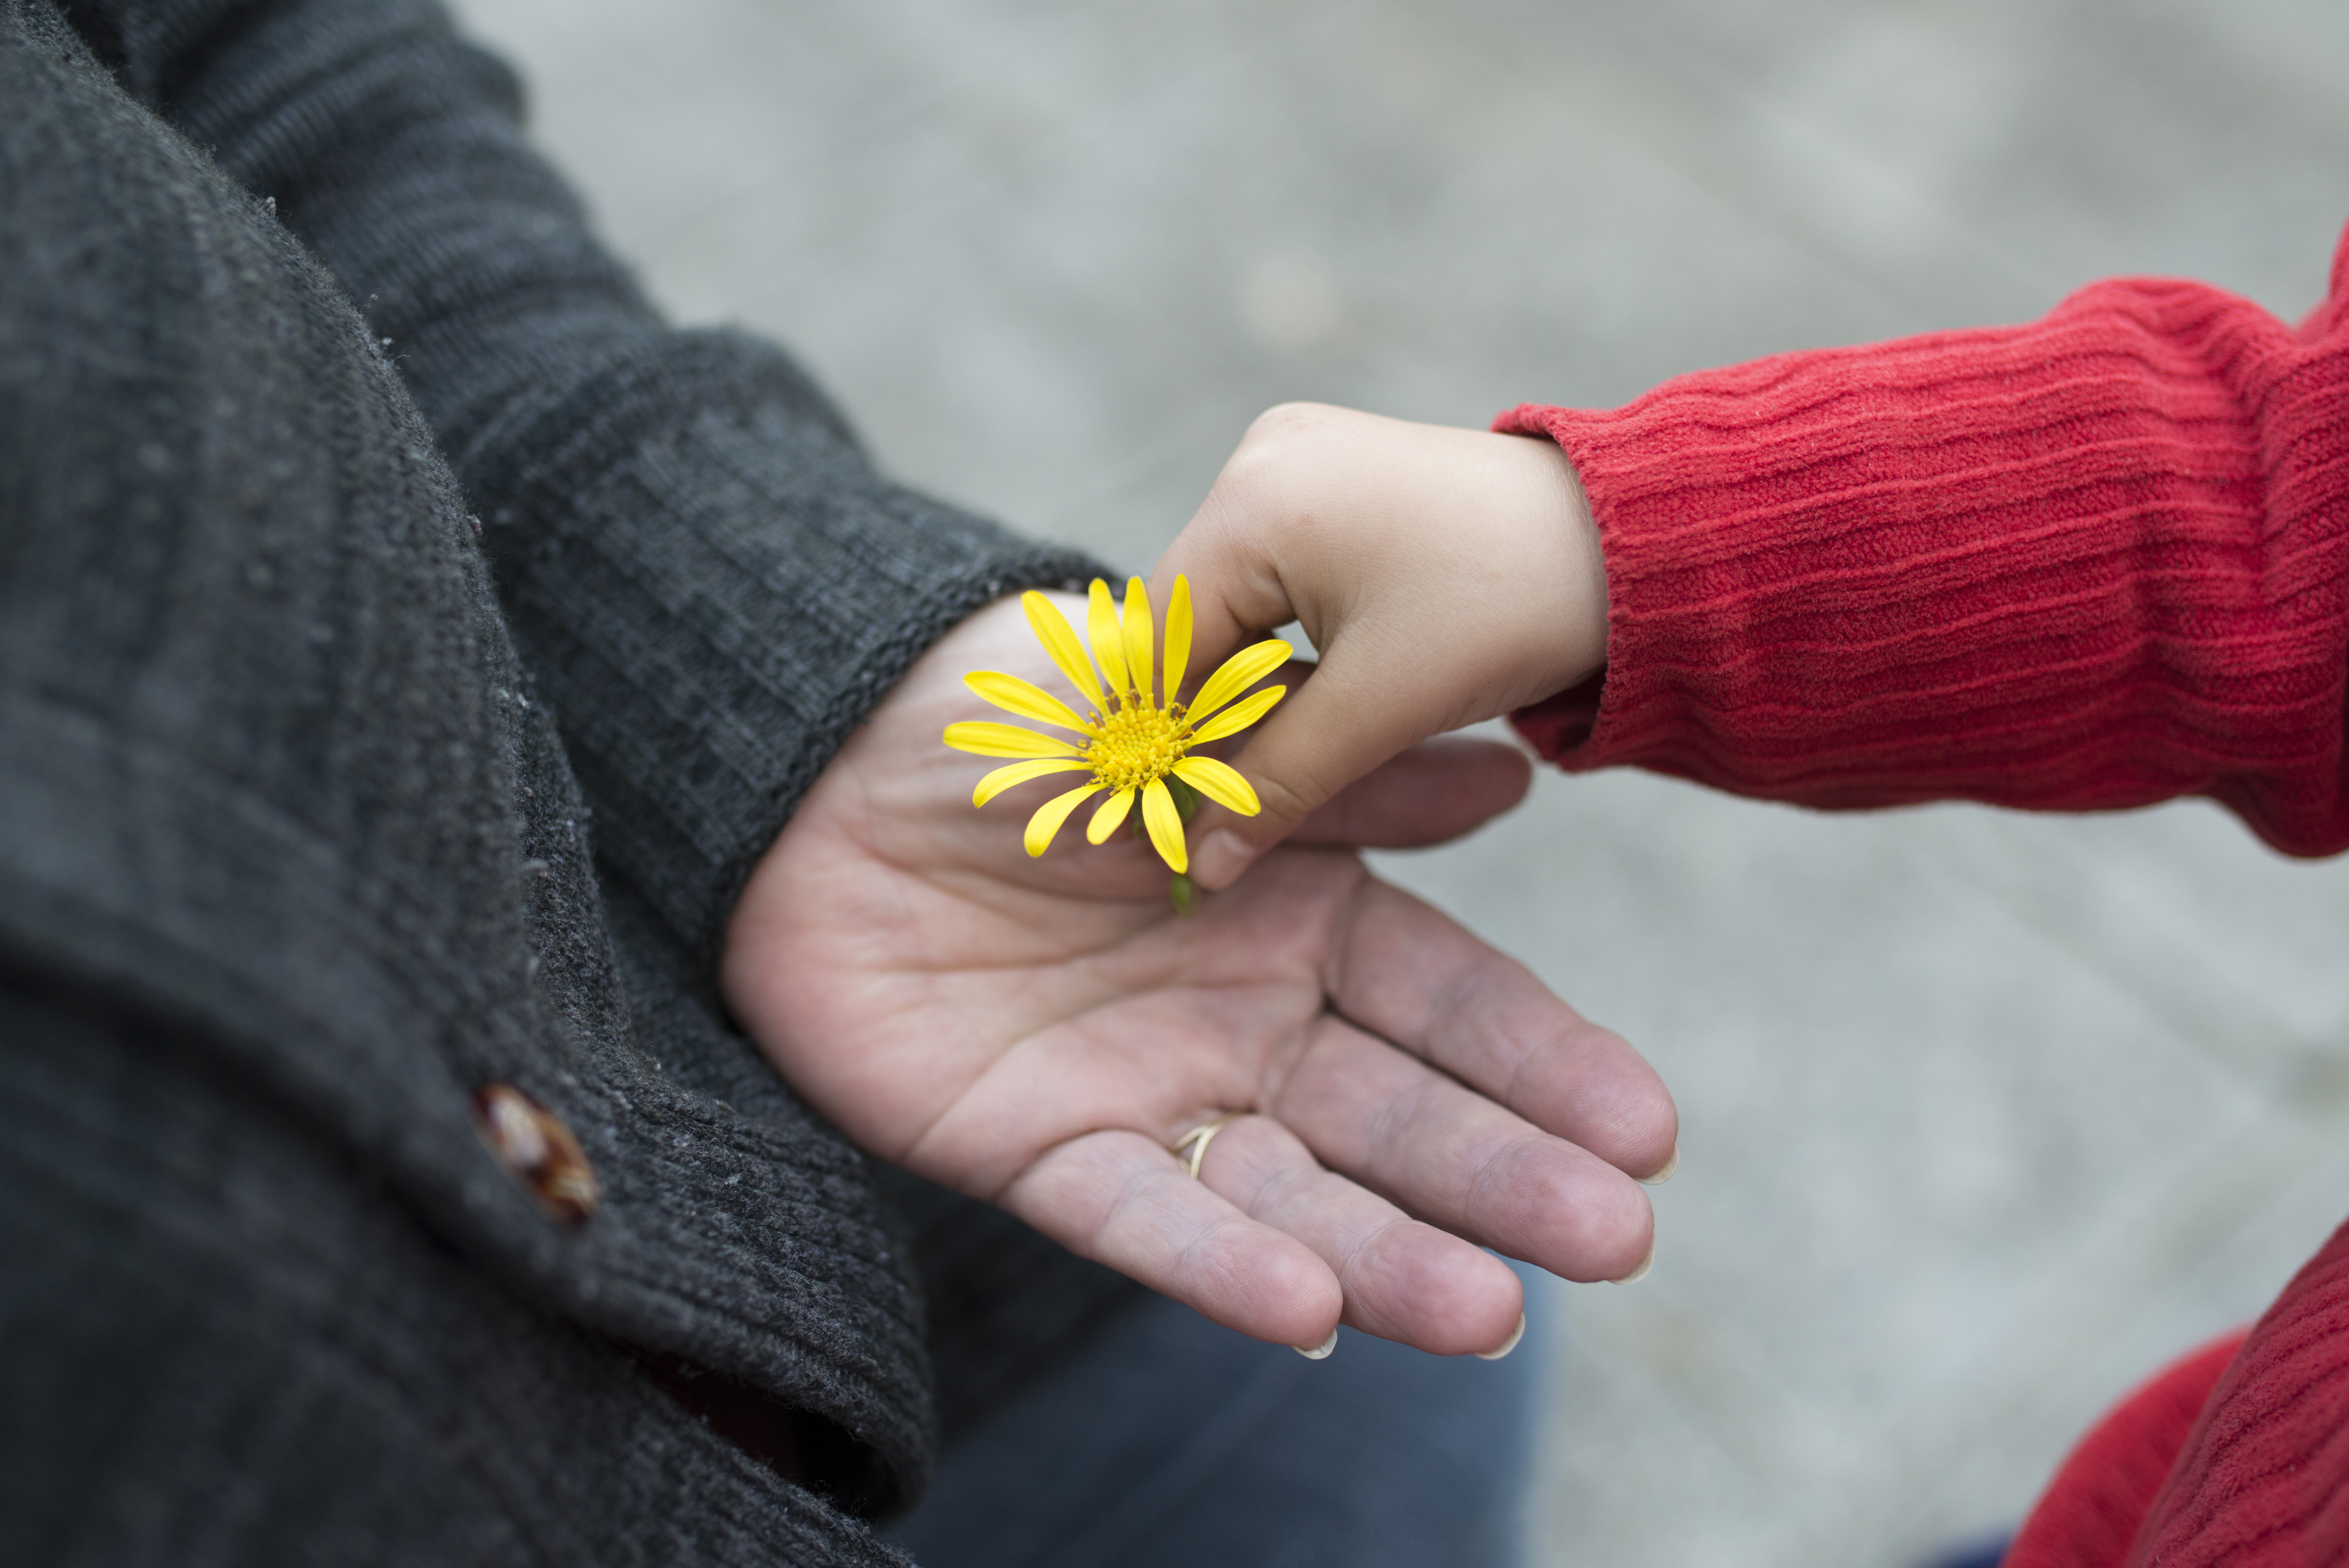 The NEW New Rules of Marketing and PR Requires Kindness